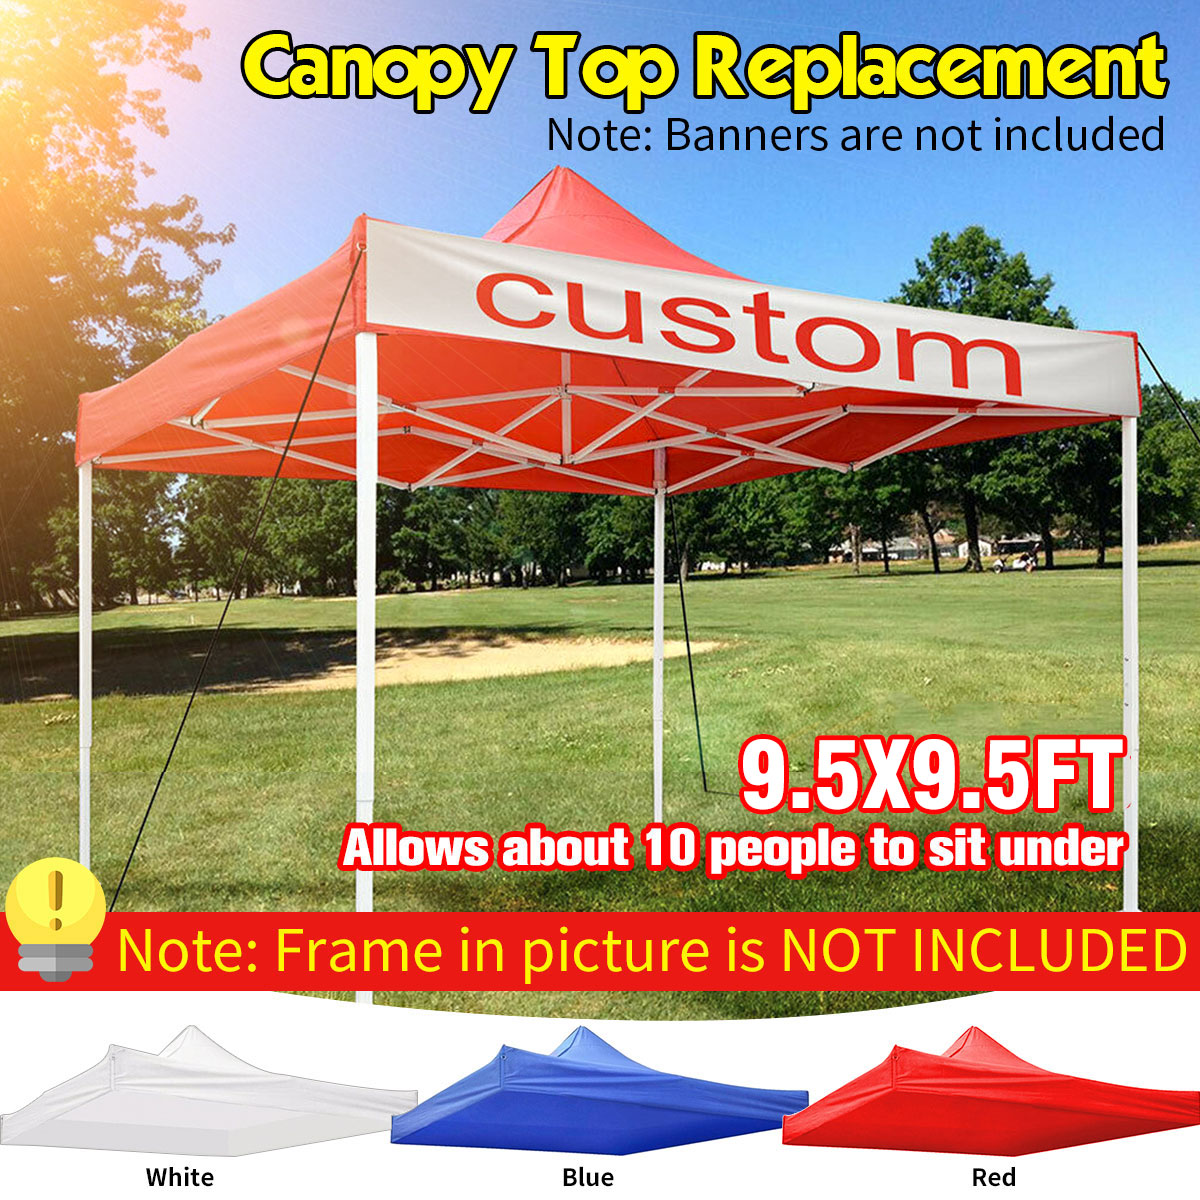 9.5x9.5ft Gazebo Tent 420D Waterproof Garden Tent Gazebo Canopy Outdoor Marquee Market Tent Shade Party Pawilon Ogrodowy 6 Color